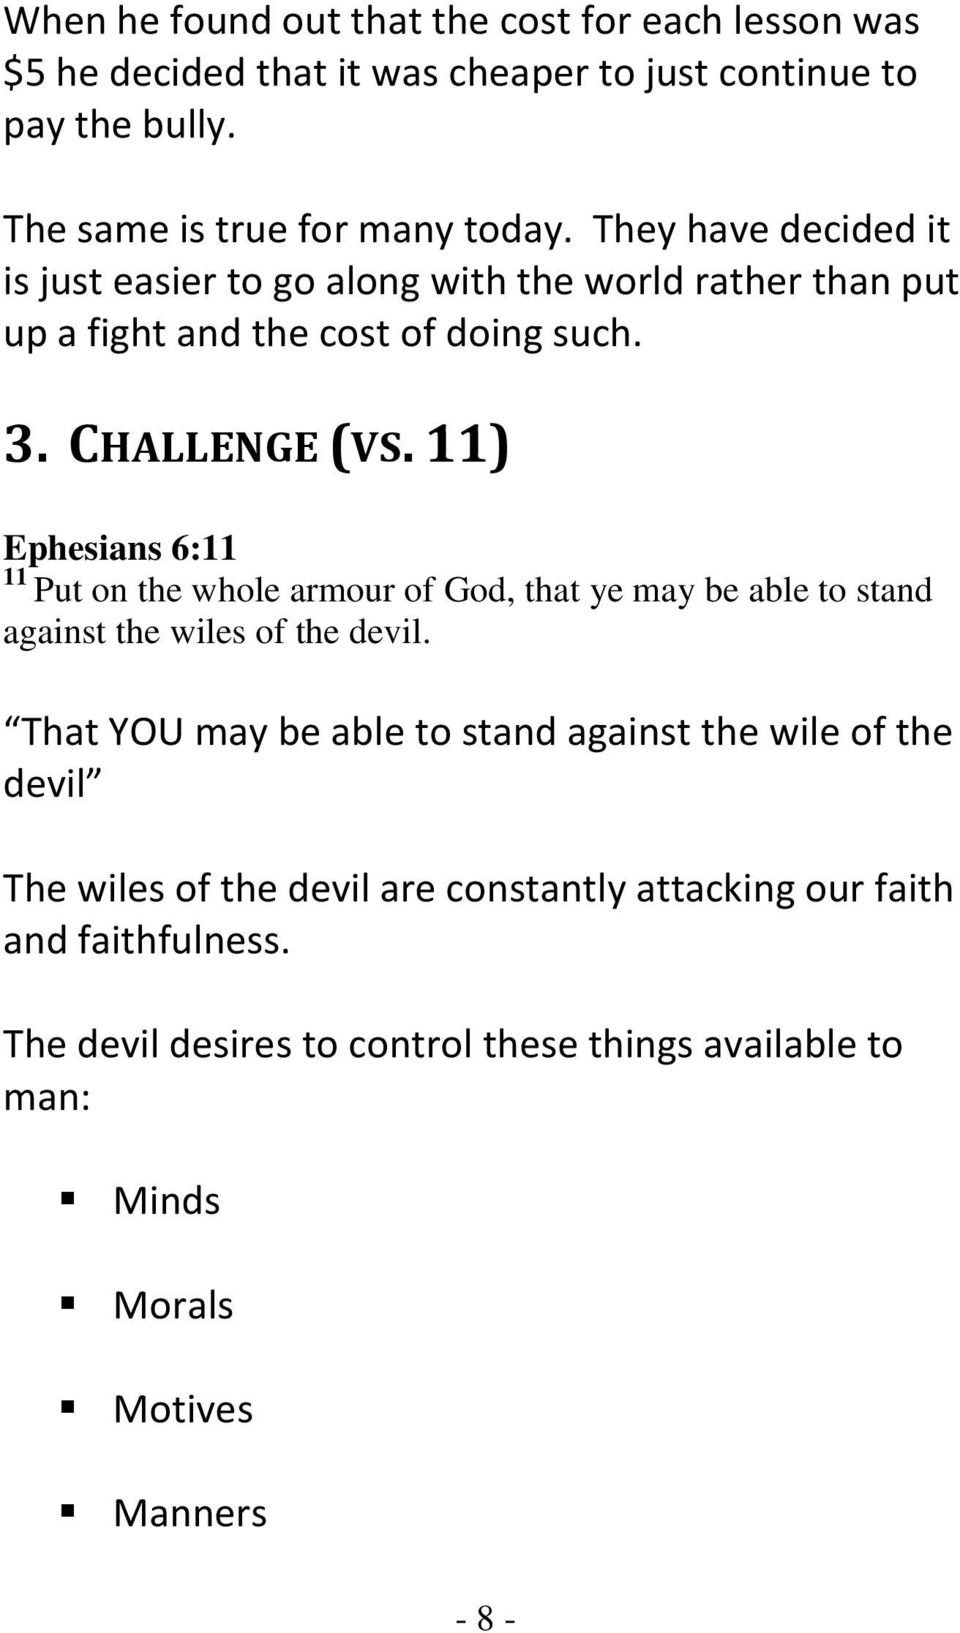 11) Ephesians 6:11 11 Put on the whole armour of God, that ye may be able to stand against the wiles of the devil.